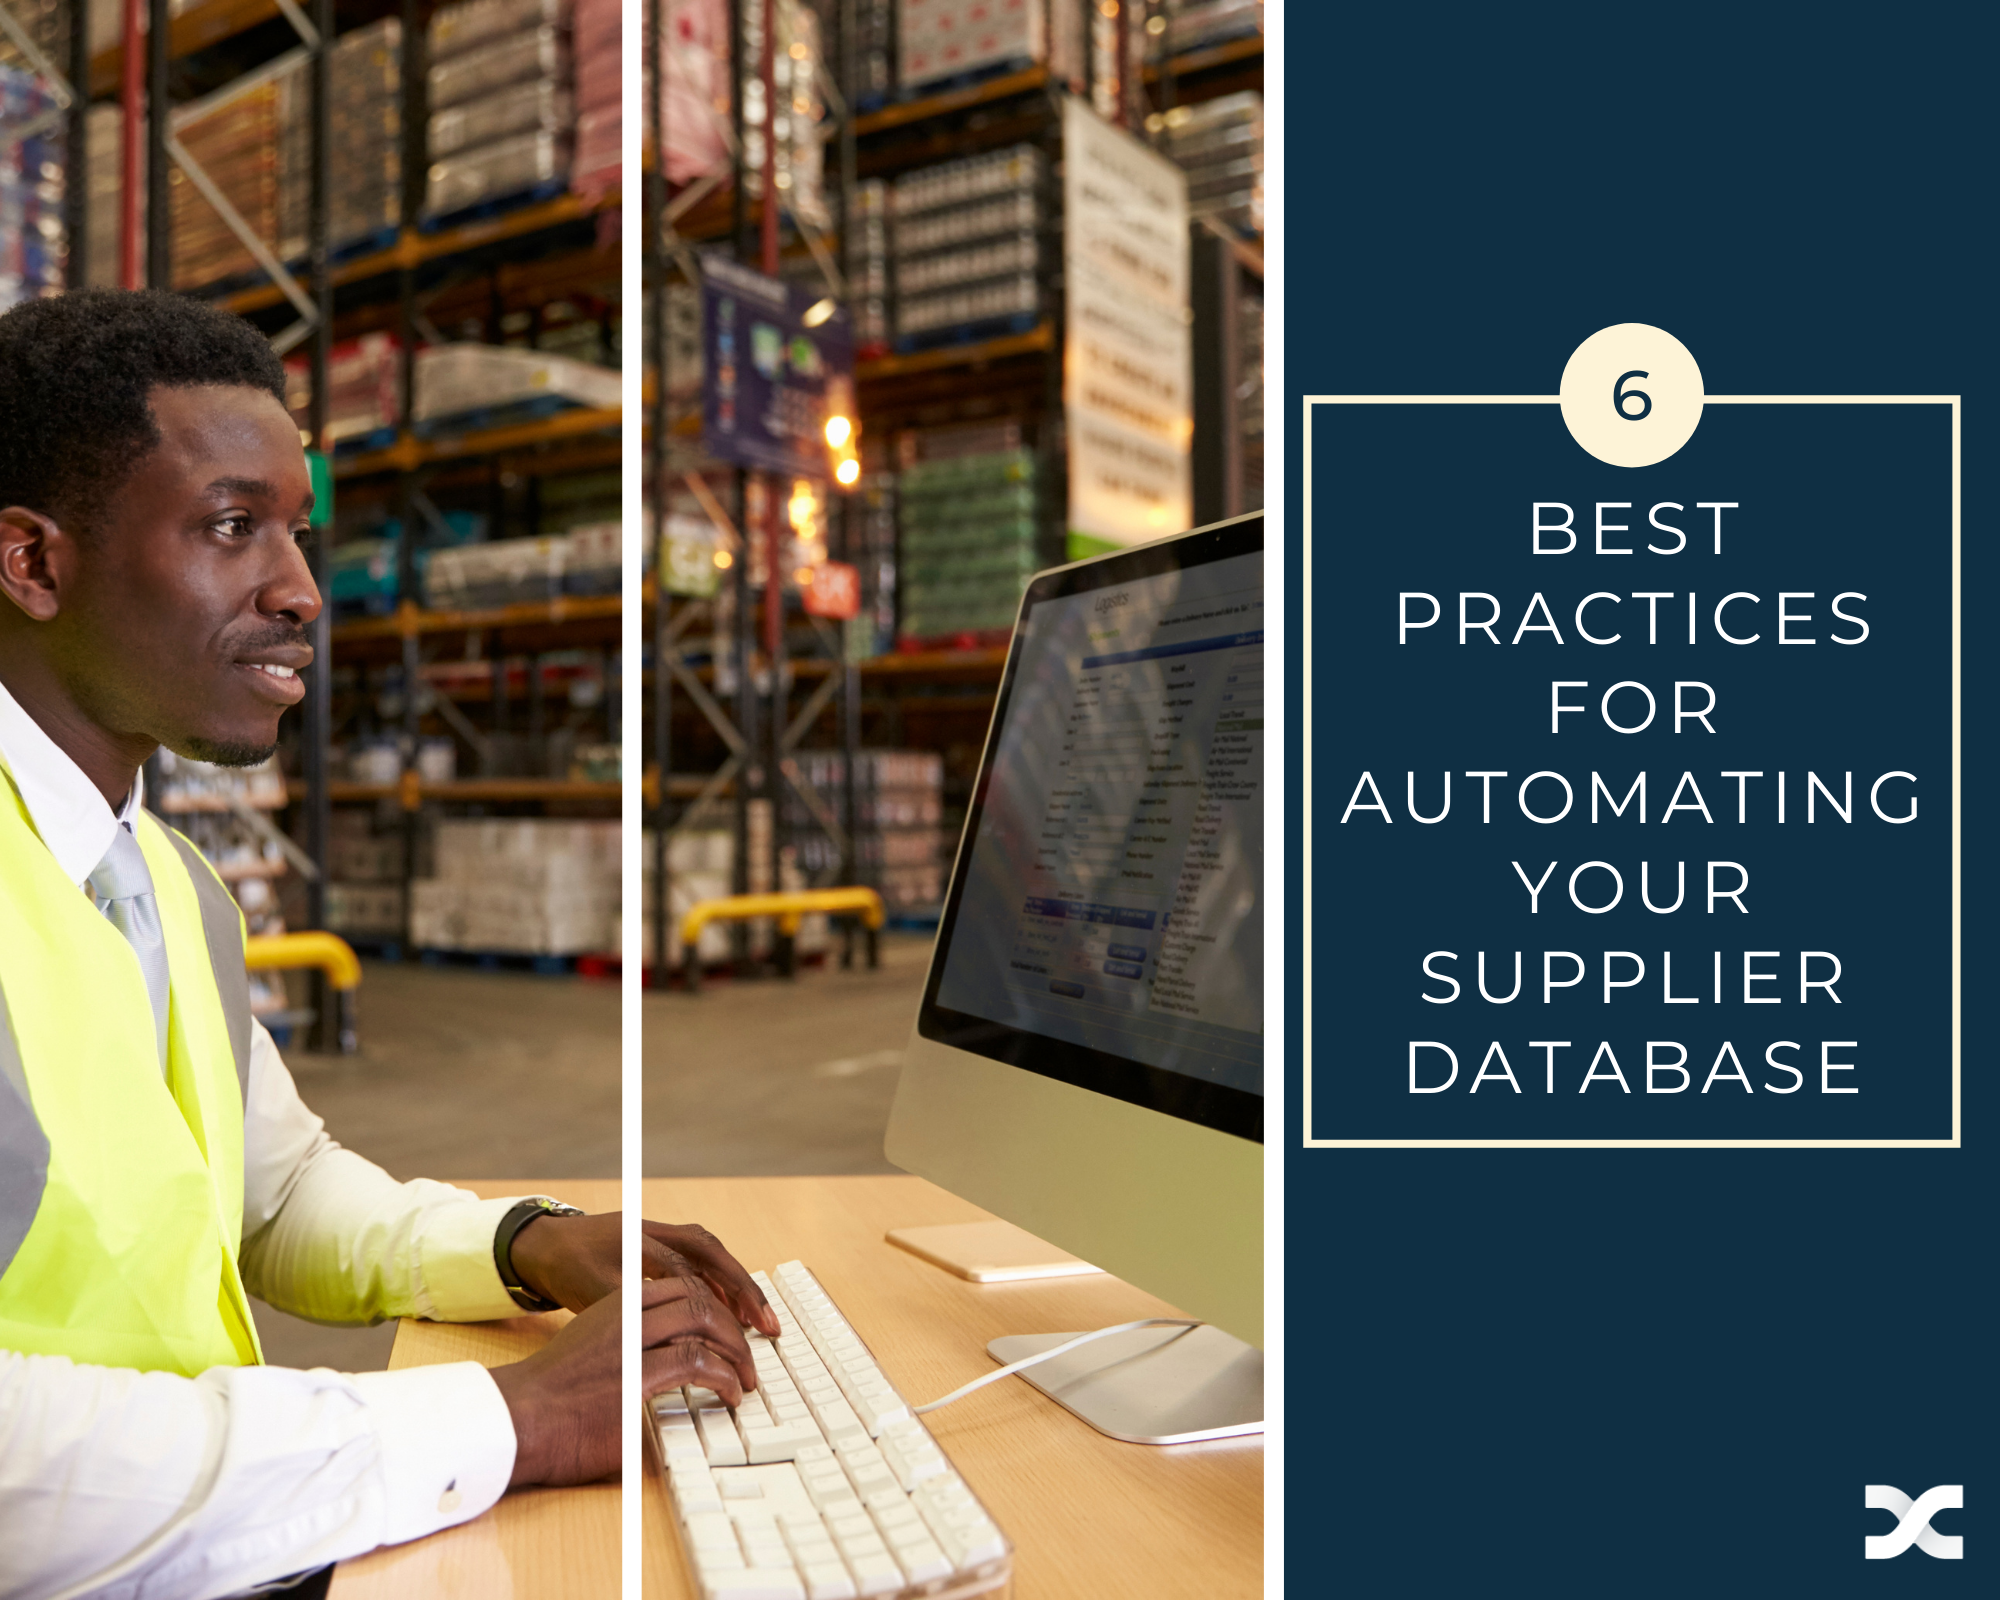 Supplier working on a computer in a warehouse alongside text reading 6 best practices for automating your supplier database